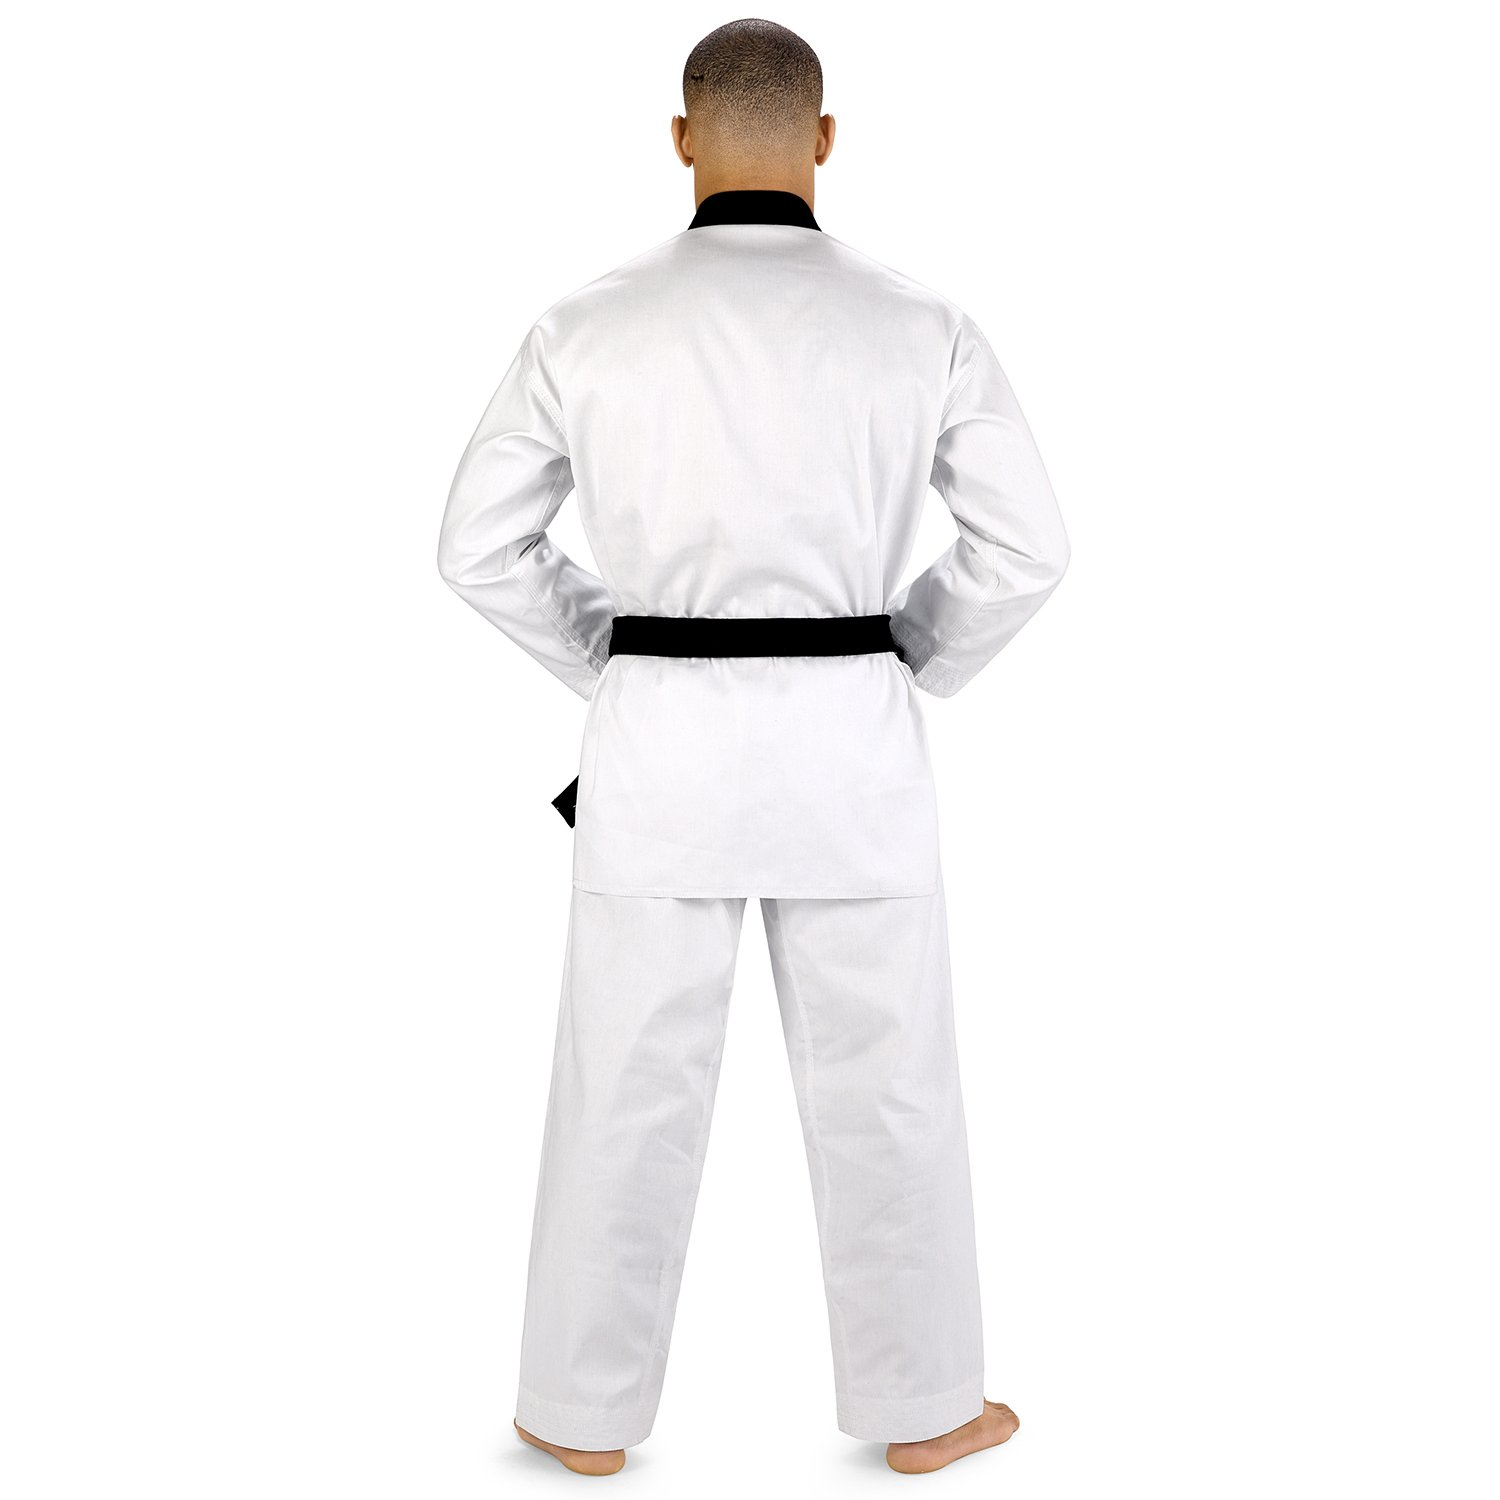 Amazon.com: Elite deportes Color Blanco Taekwondo Kimono TKD ...